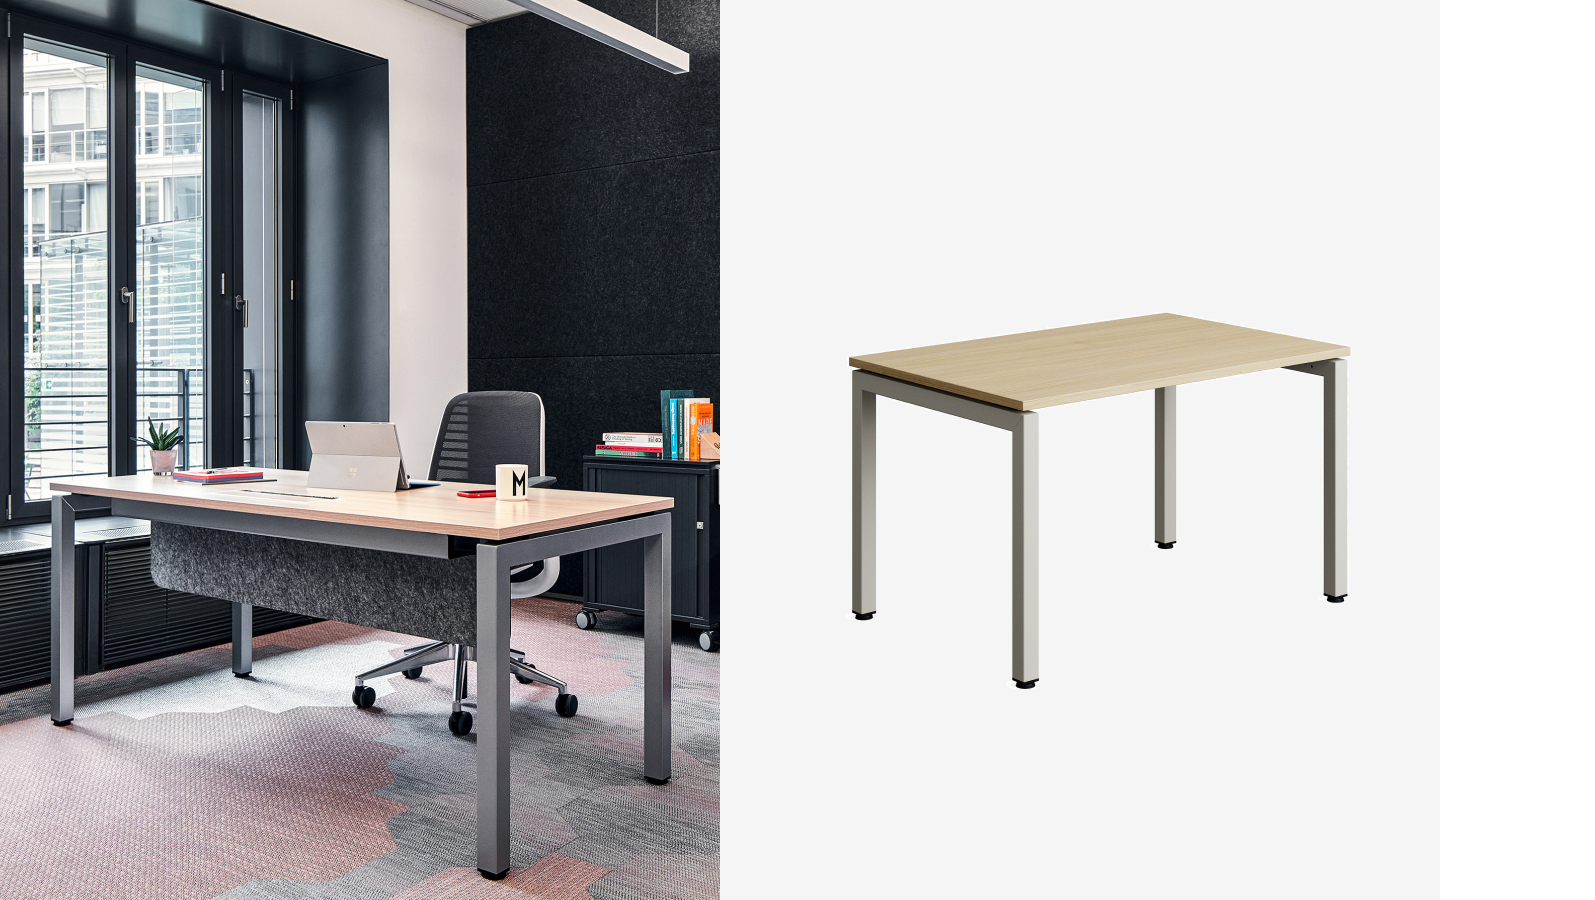 Office desk with wooden top and steel legs